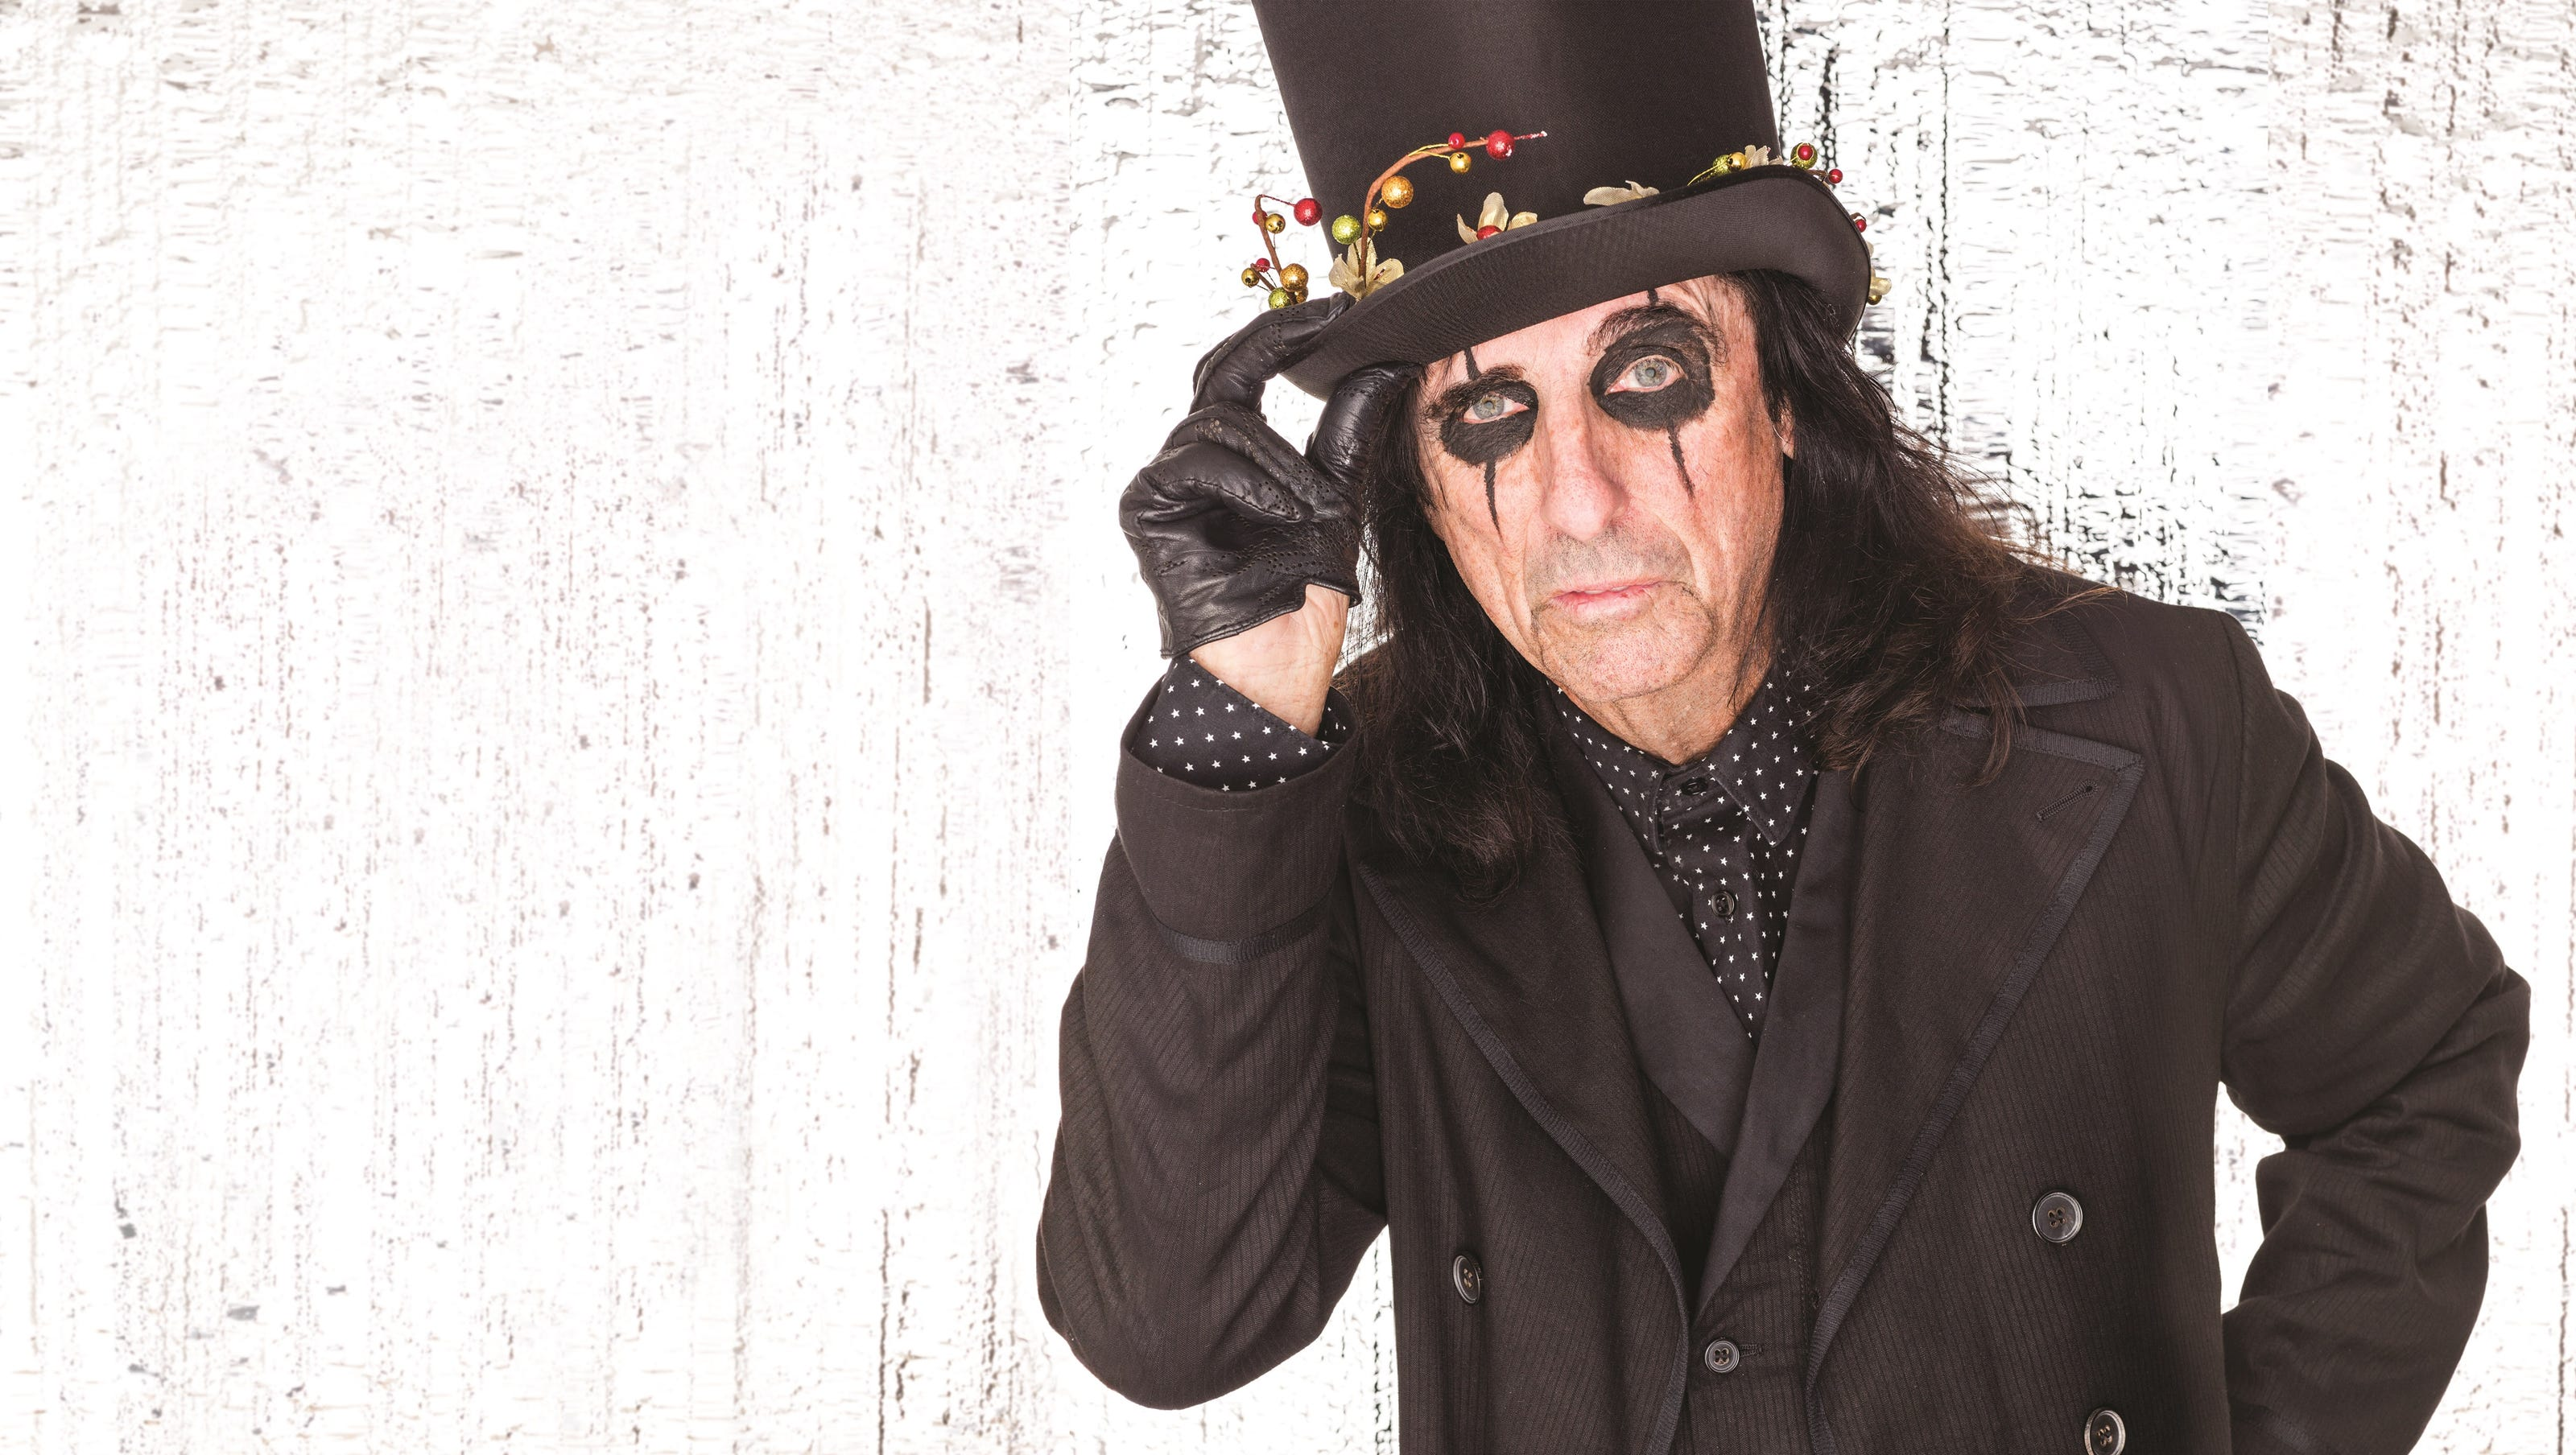 Joe Perry Alice Cooper Christmas Pudding 2021 Alice Cooper Of Hollywood Vampires Talks Christmas Pudding Jagger And Getting Older